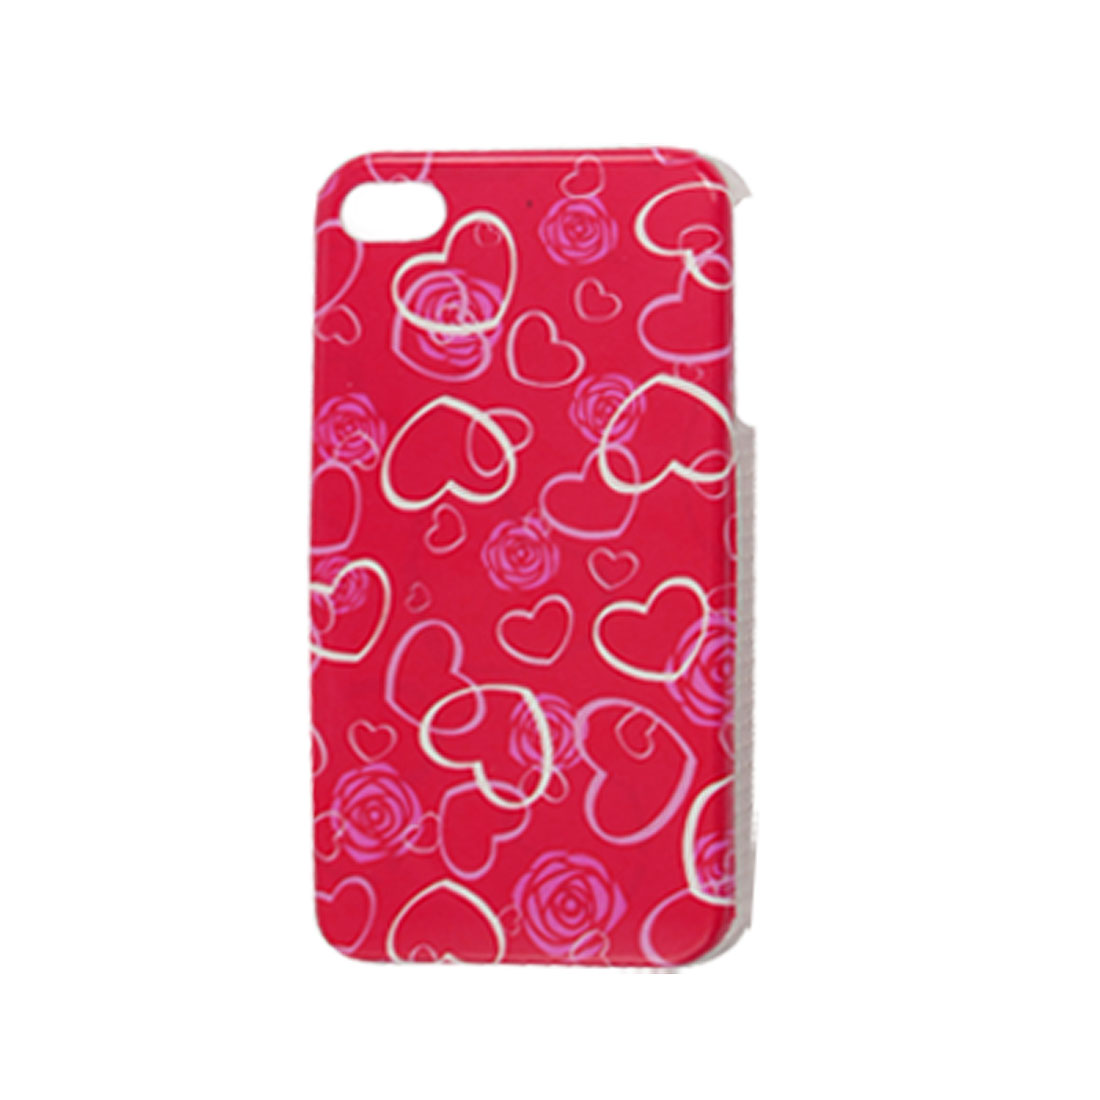 IMD Heart Print Red Hard Plastic Back Case Cover for iPhone 4 4G 4S